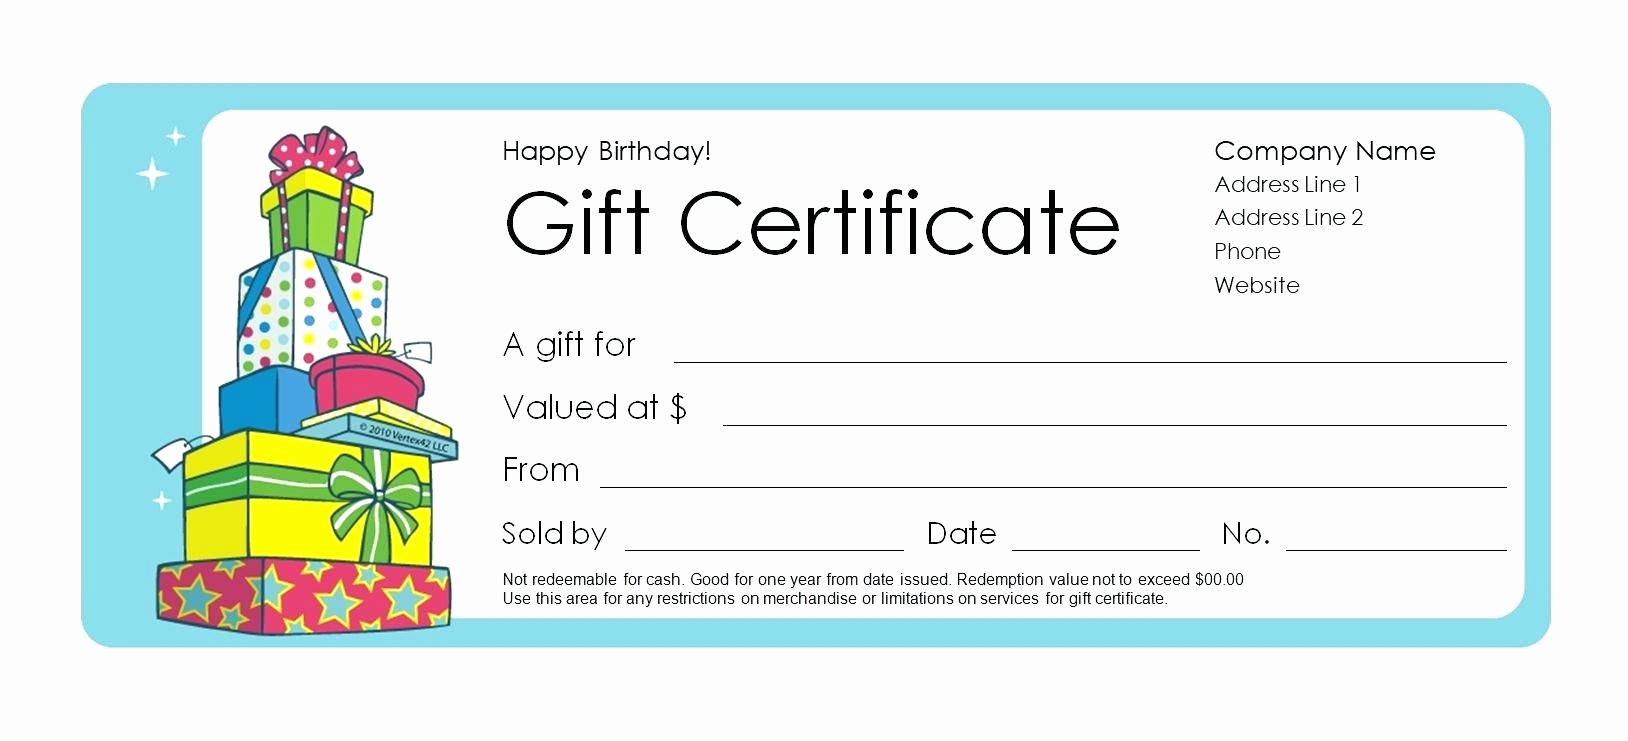 Gift Certificate Template Word Free Lovely Template Microsoft Word Gift Certificate Template